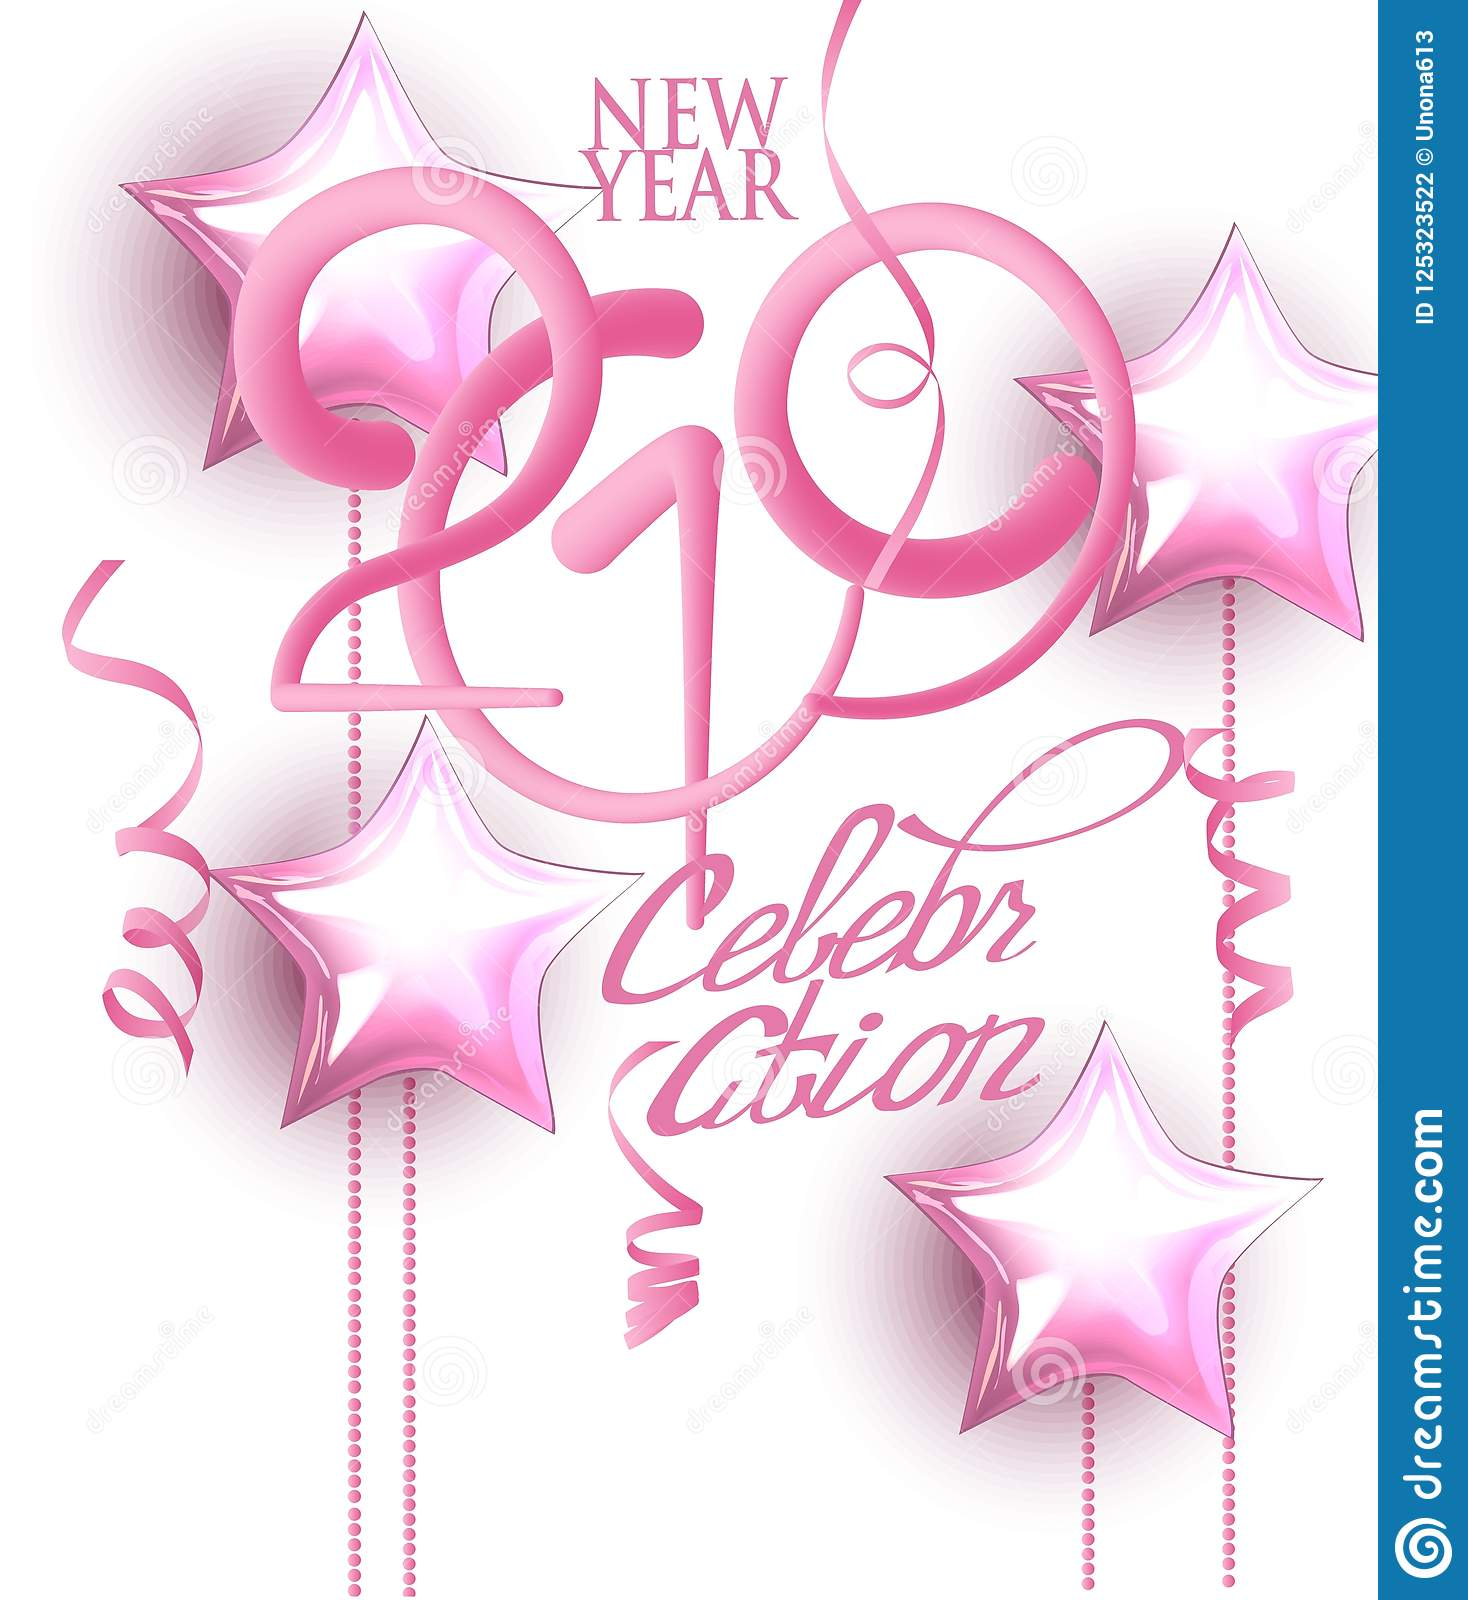 New Year 2019 Celebration Invitation Card With Pink Decorations And